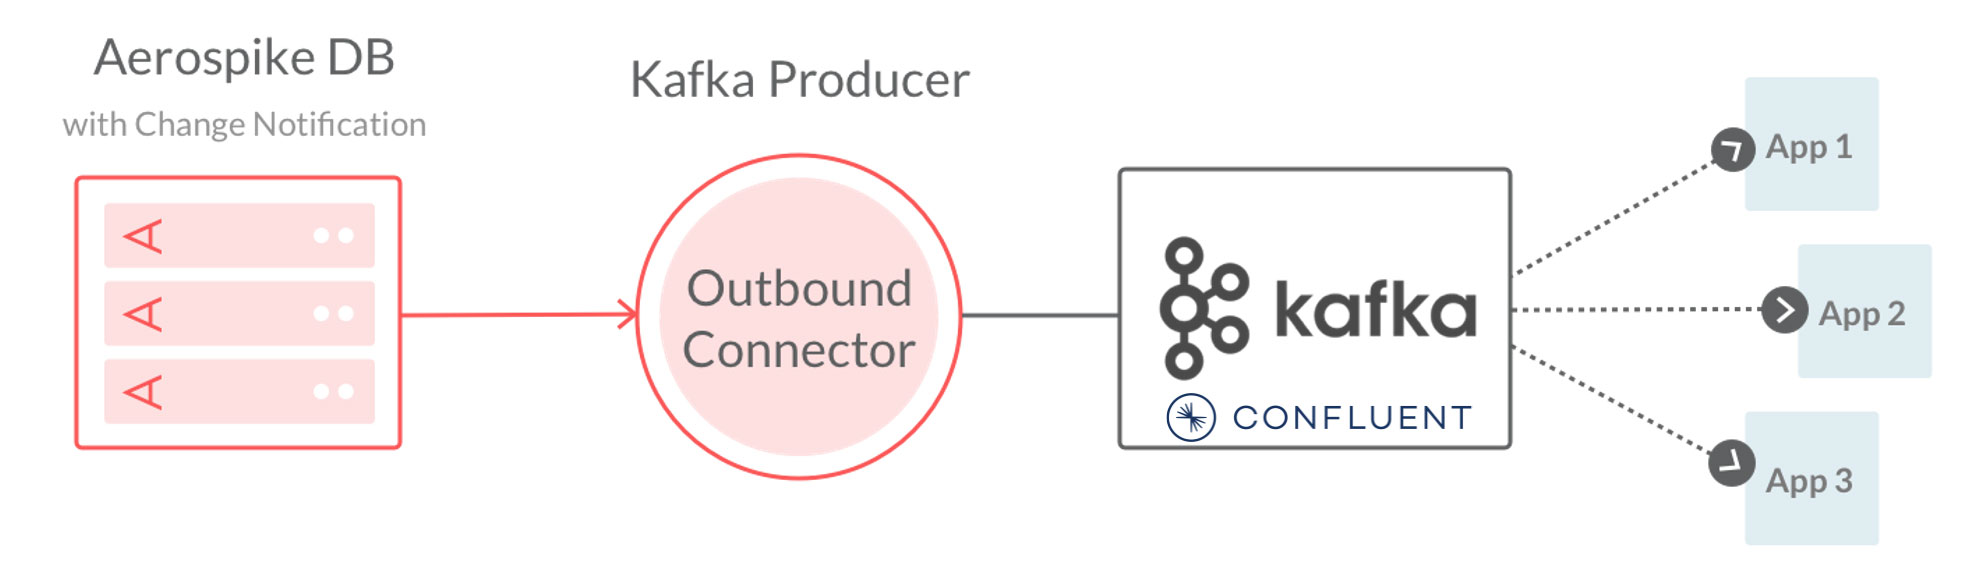 Diagram - Connect for Kafka & Confluent - Source Connector utilizes Kafka Producer